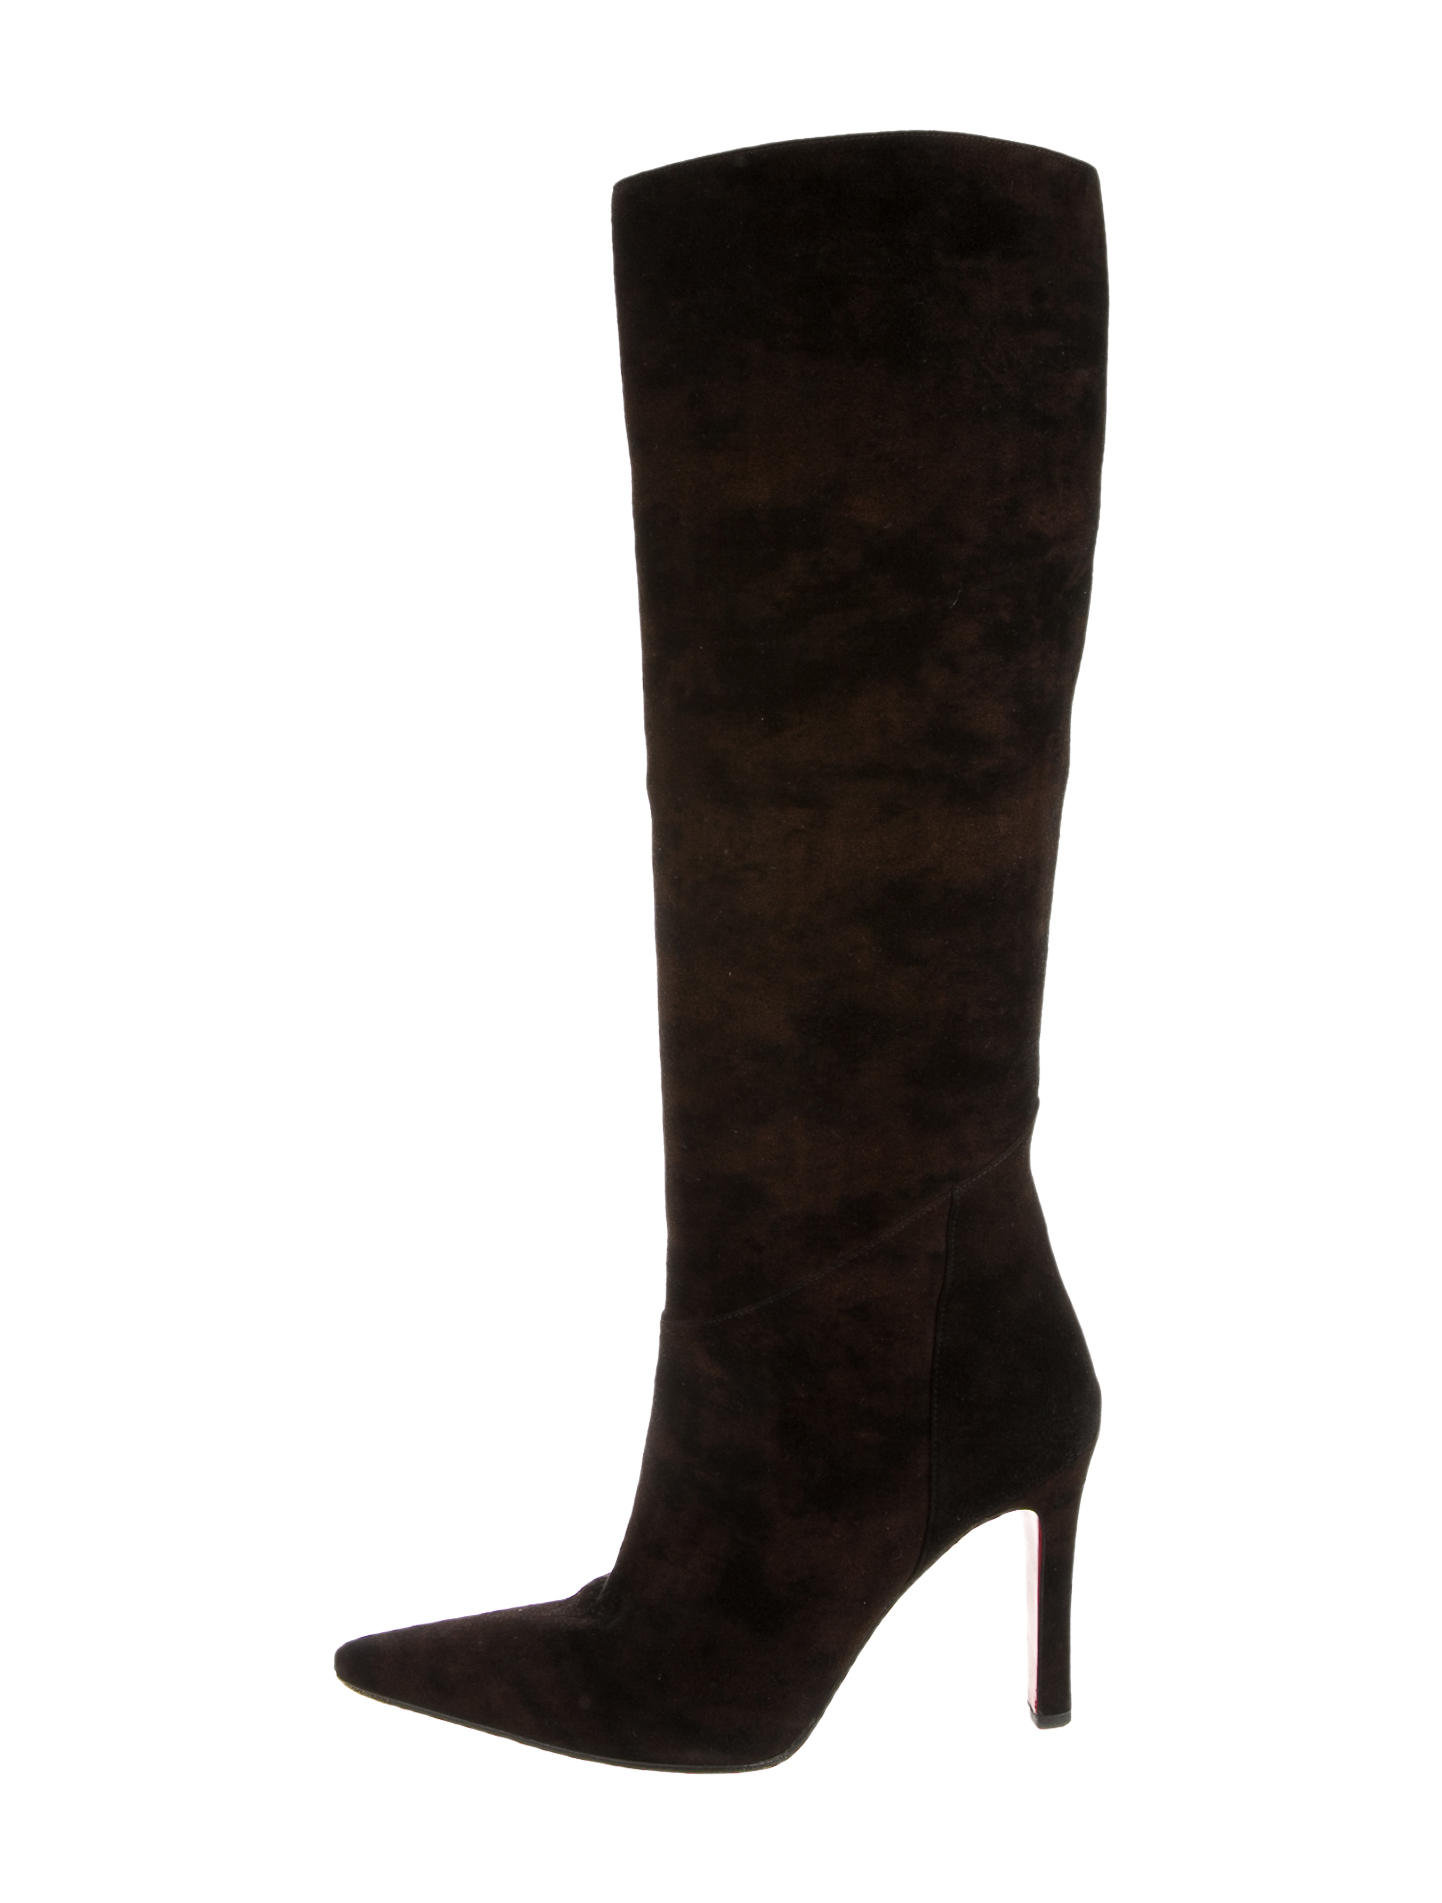 8ff6b8eb775  1400 Christian Louboutin Black Suede Knee High Pointed Toe 120mm Boots SZ  37. Return to Previous Page. Out. of stock. 2048783